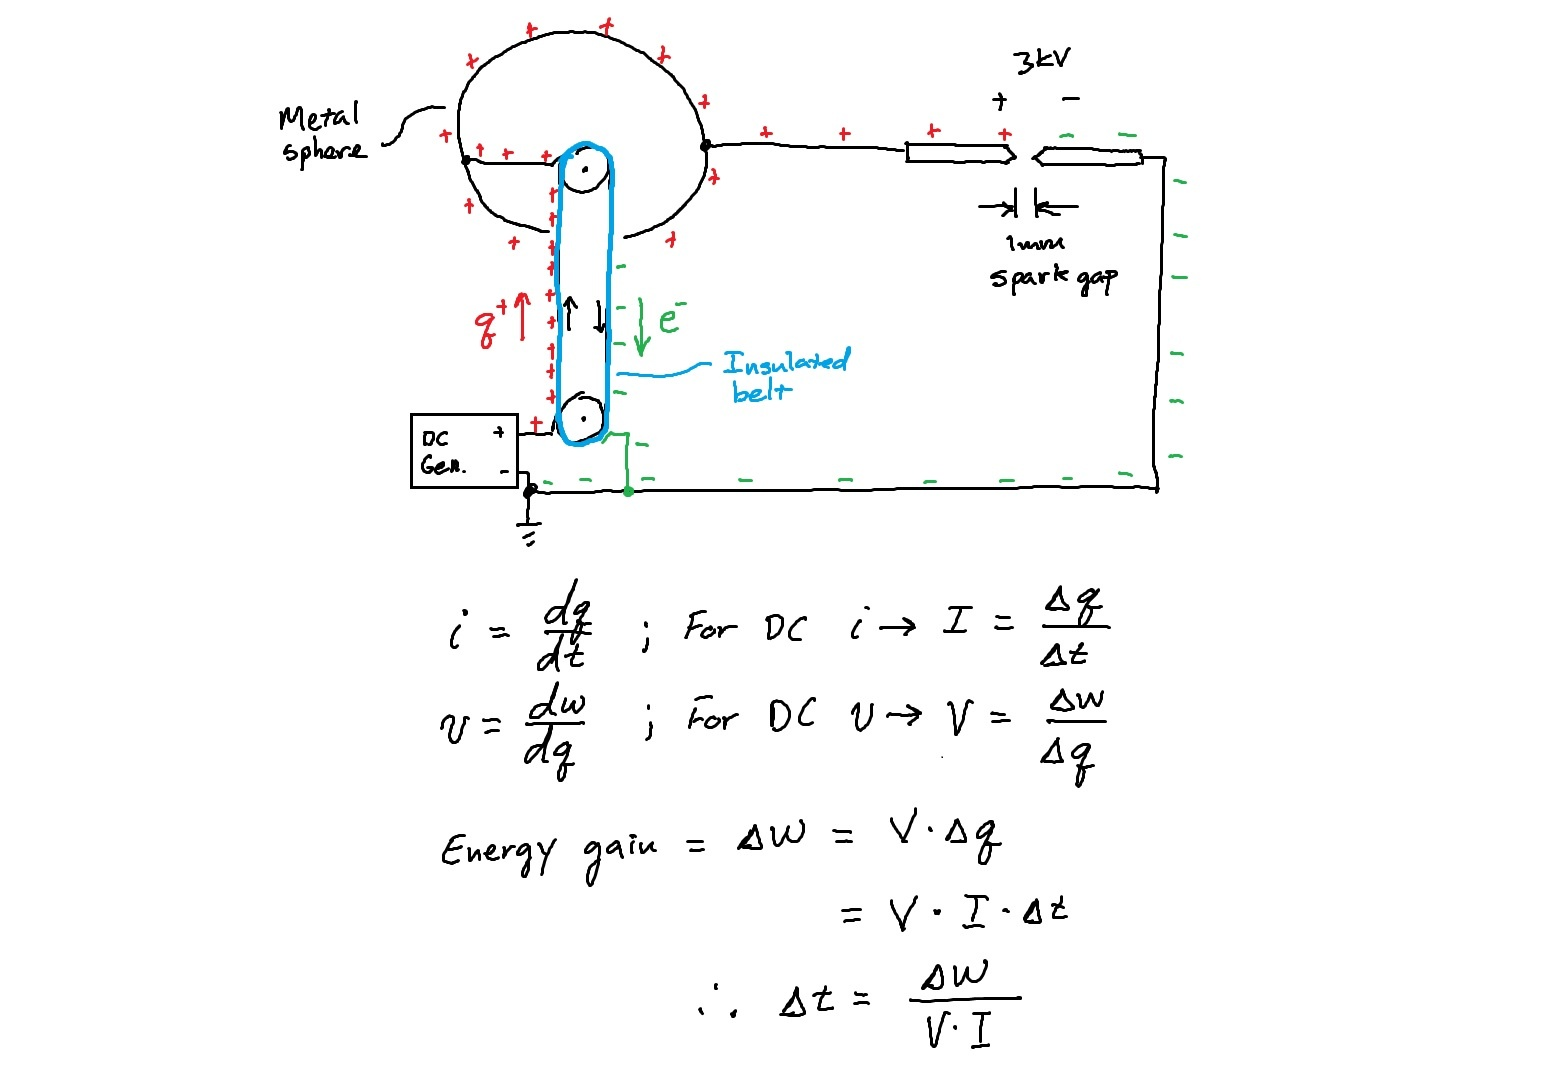 hight resolution of for a spark gap between two pointed electrodes in air the breakdown voltage will be approximately 3 kv mm the time to buildup 3 kv will then be a function